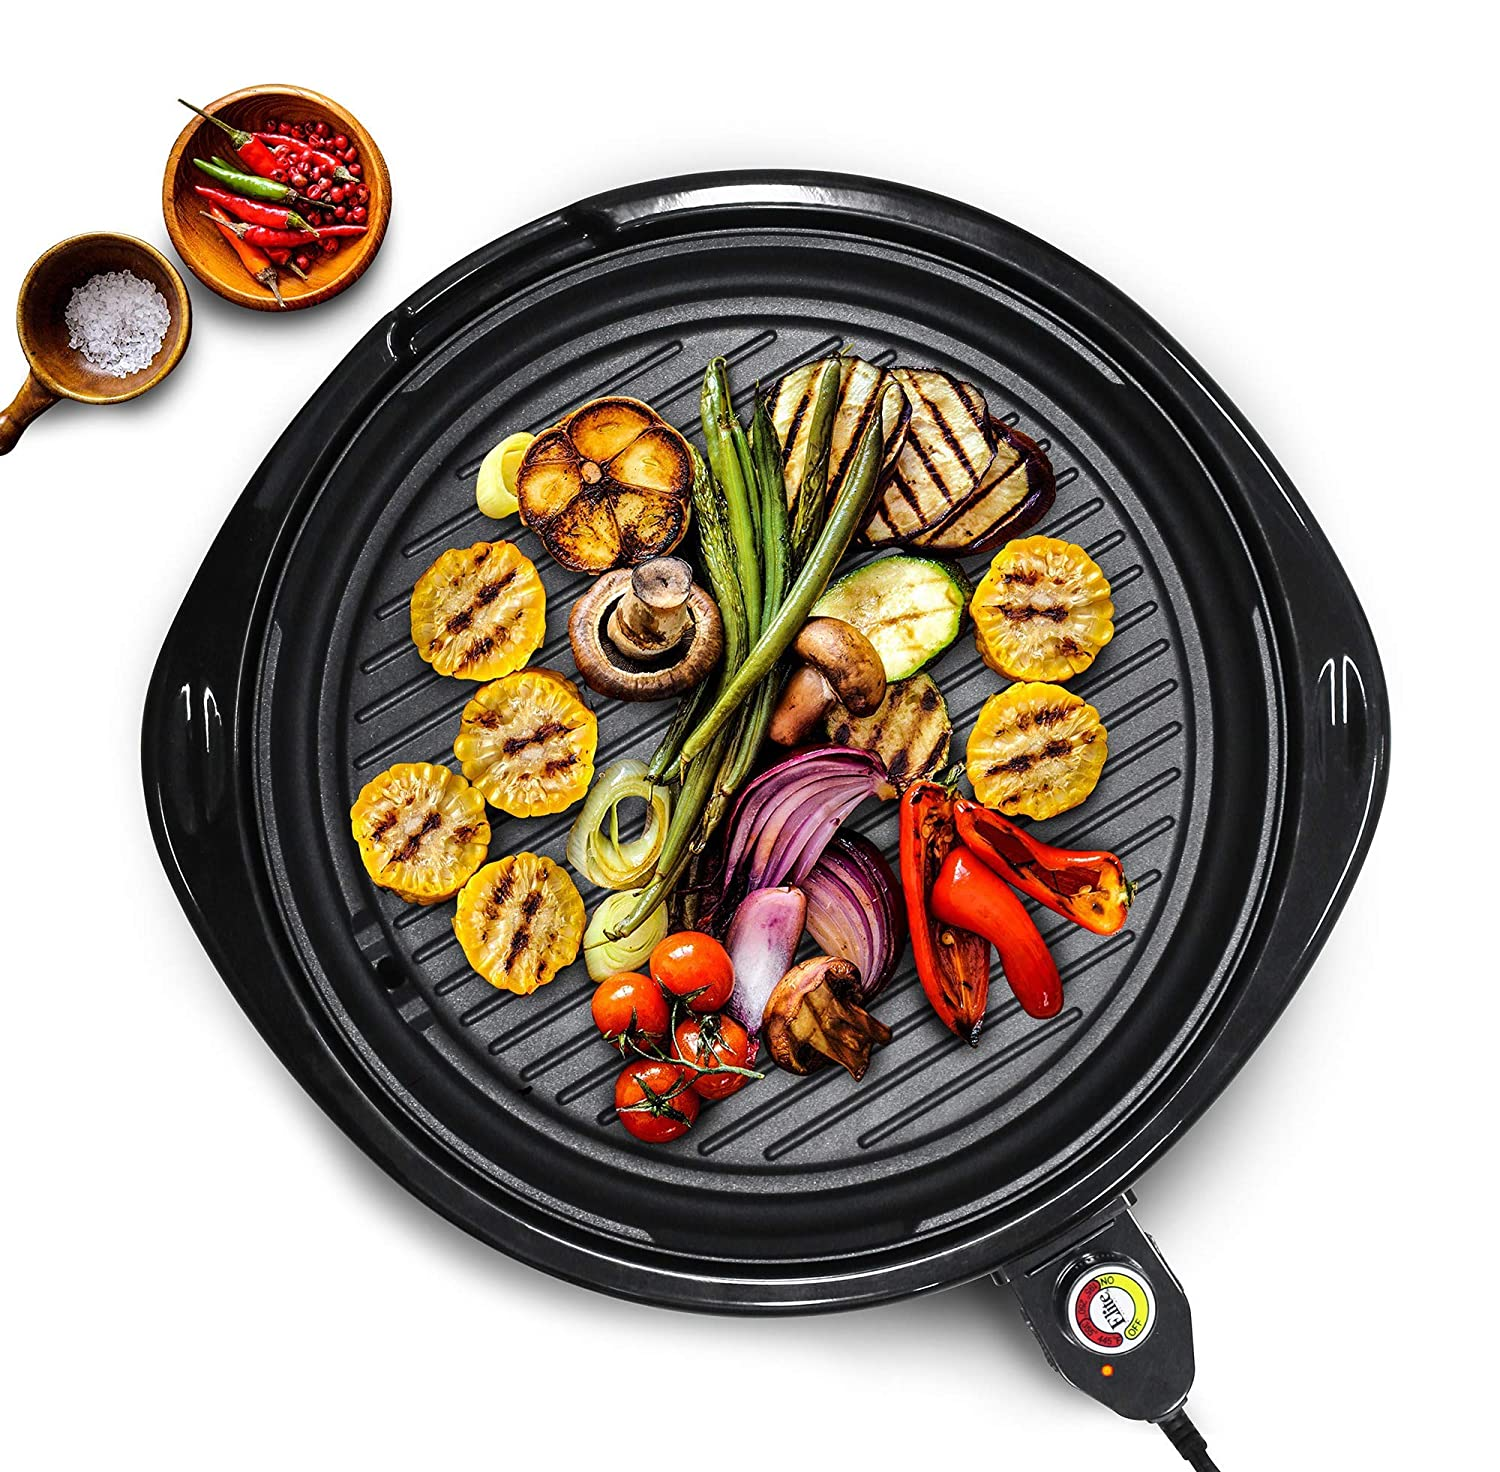 Easy To Clean Design Includes Glass Lid Ideal Low-Fat Meals Maxi-Matic EMG-980BSC Large Indoor Electric Nonstick Grilling Surface 14 Round B Faster Heat Up